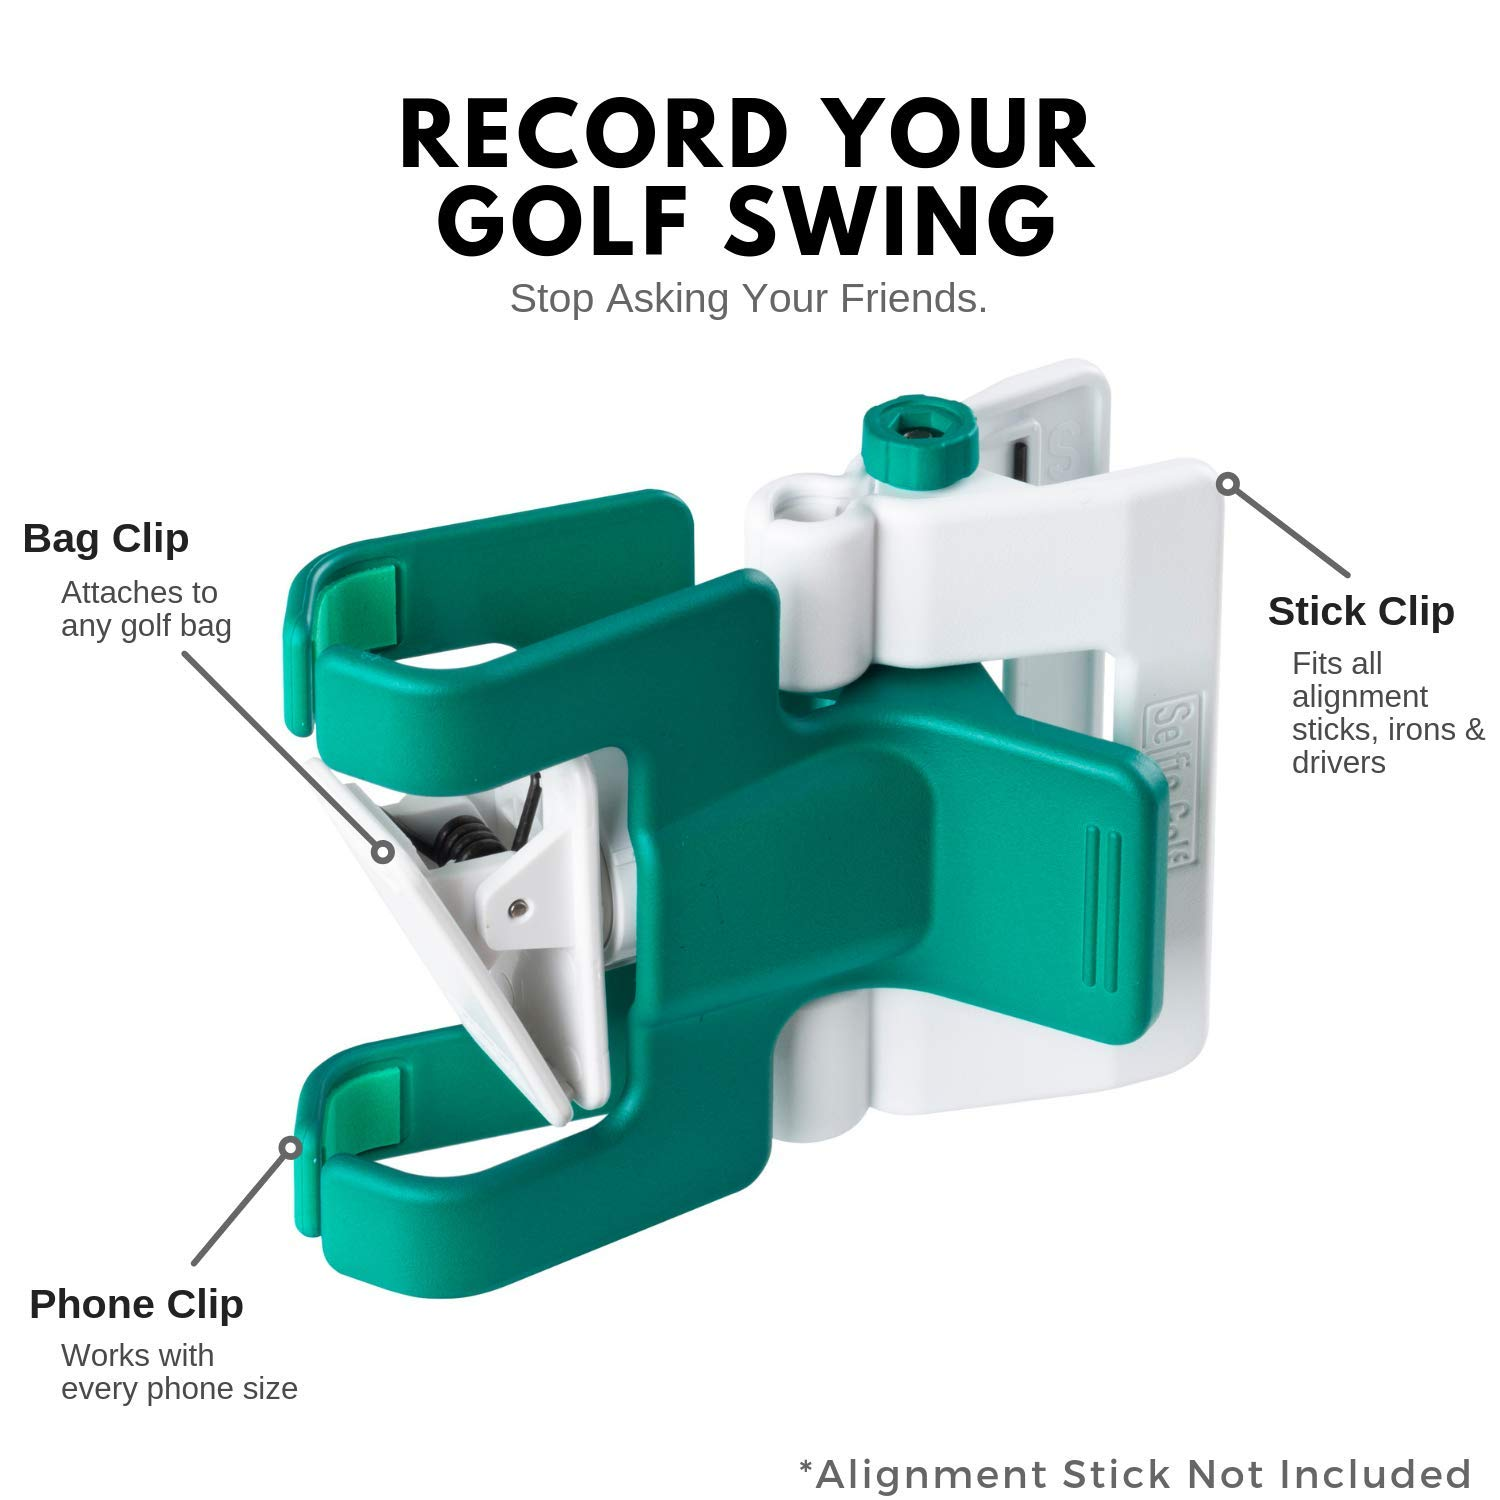 SelfieGolf Record Golf Swing - Cell Phone Clip Holder and Training Aid - Golf Accessories | Winner of The PGA Best Product | Works with Any Smart Phone, Quick Set Up (Green/White) by Selfie Golf (Image #3)